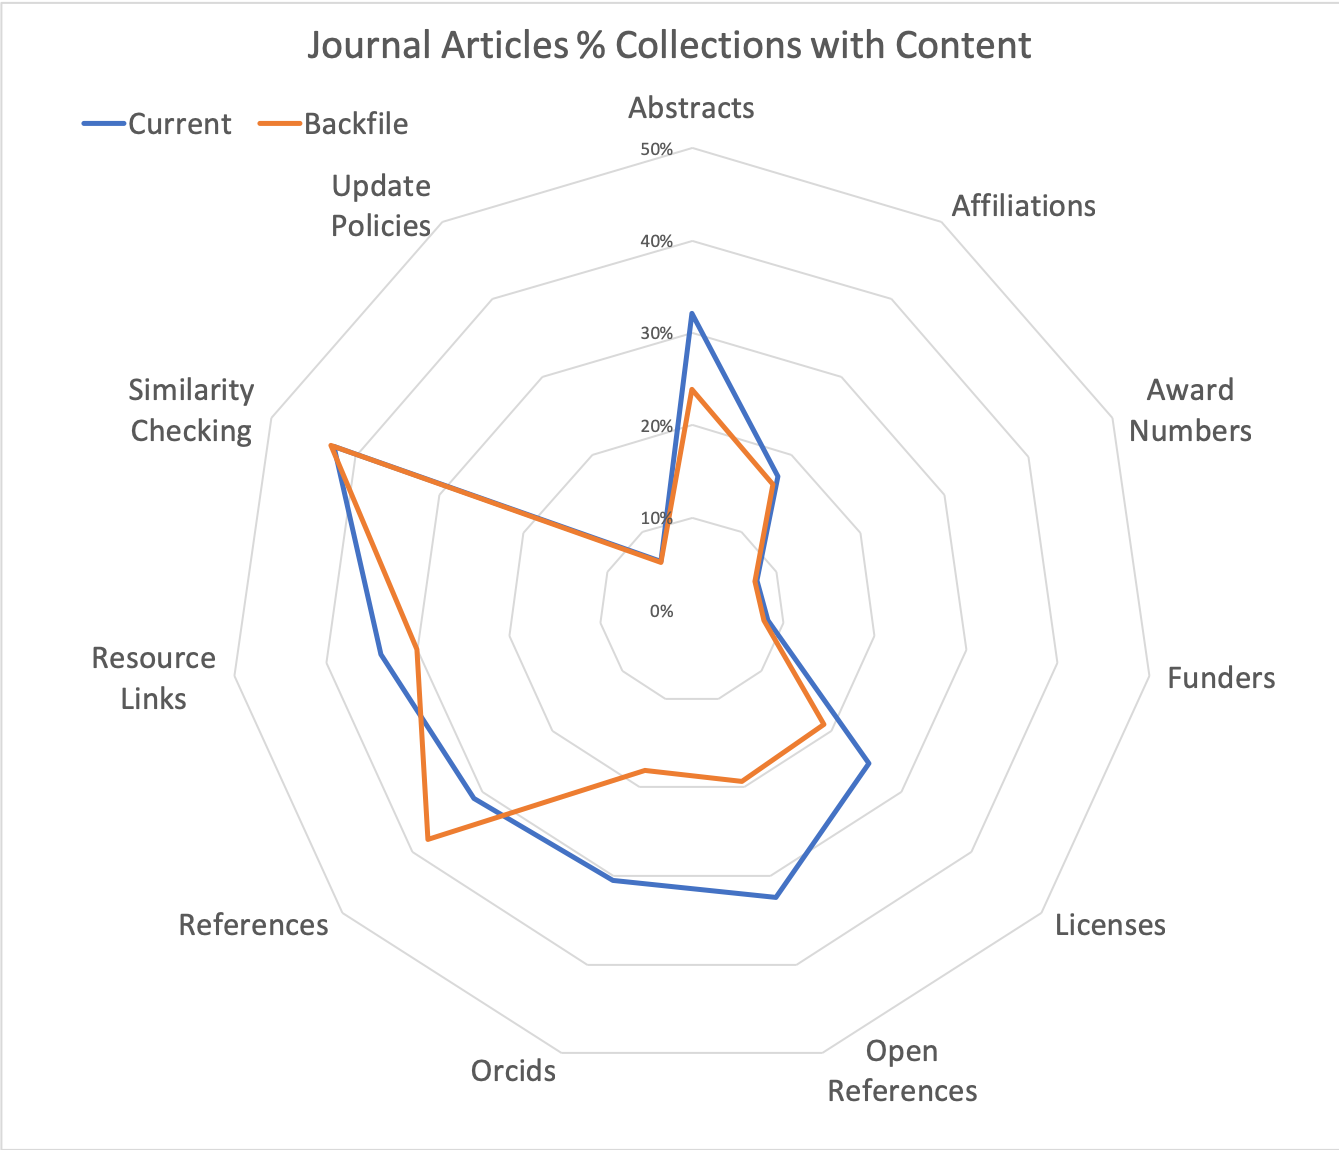 The % of CrossRef collections that include metadata elements during the backfile (orange) and current (blue) time periods. Note that this percentage has increased for all metadata elements except references. While completeness of references has decreased by 7%, completeness of Open References has increased by 13%. This indicates migration of the entire collection towards open-references.